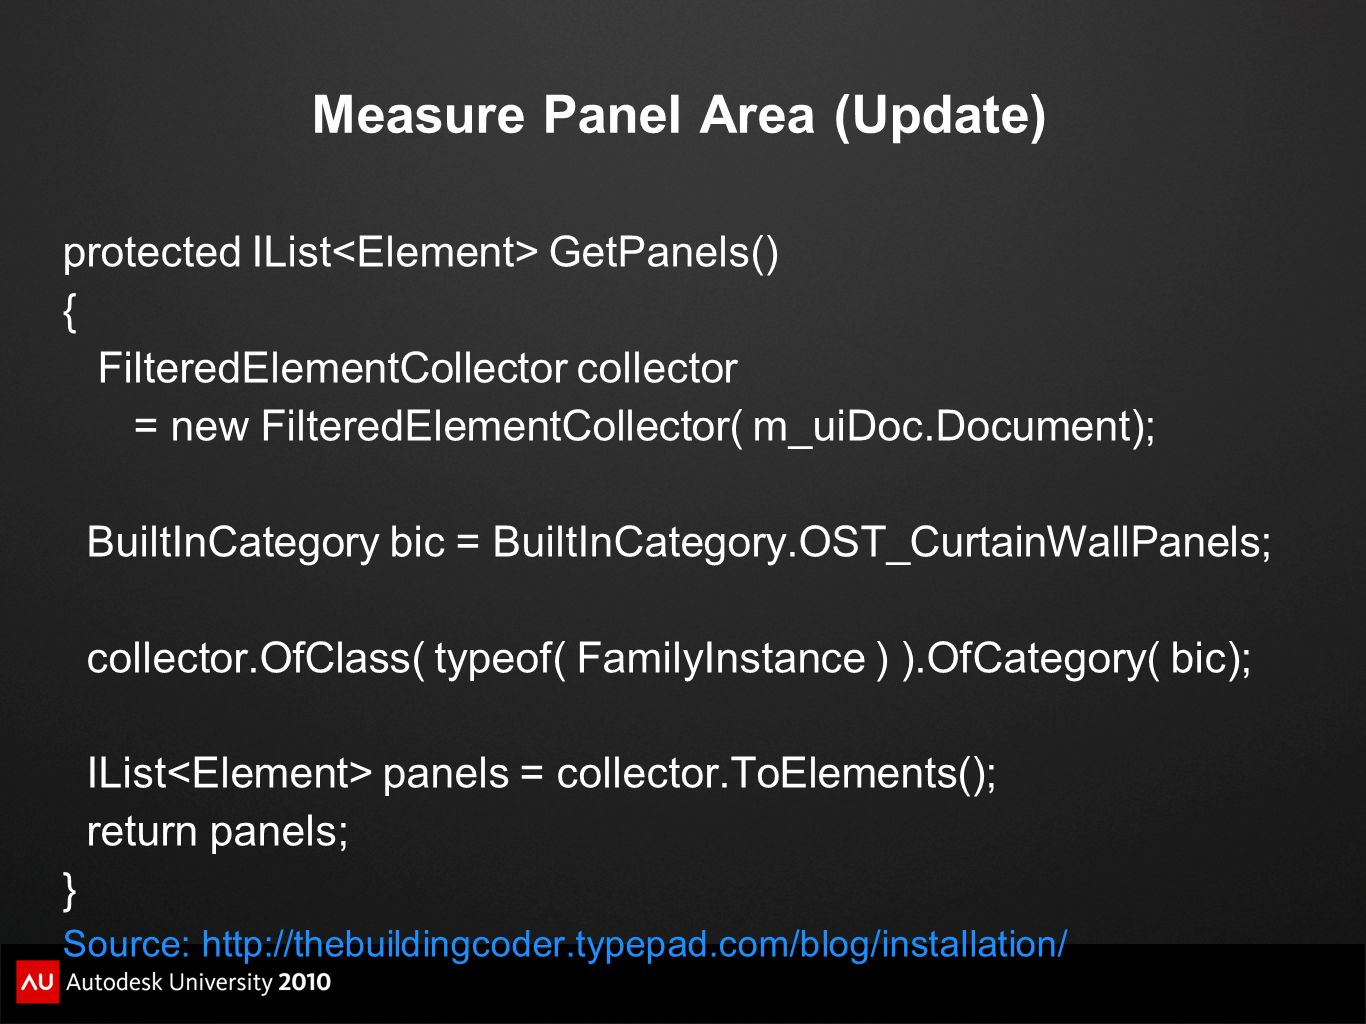 Measure Panel Area (Update)